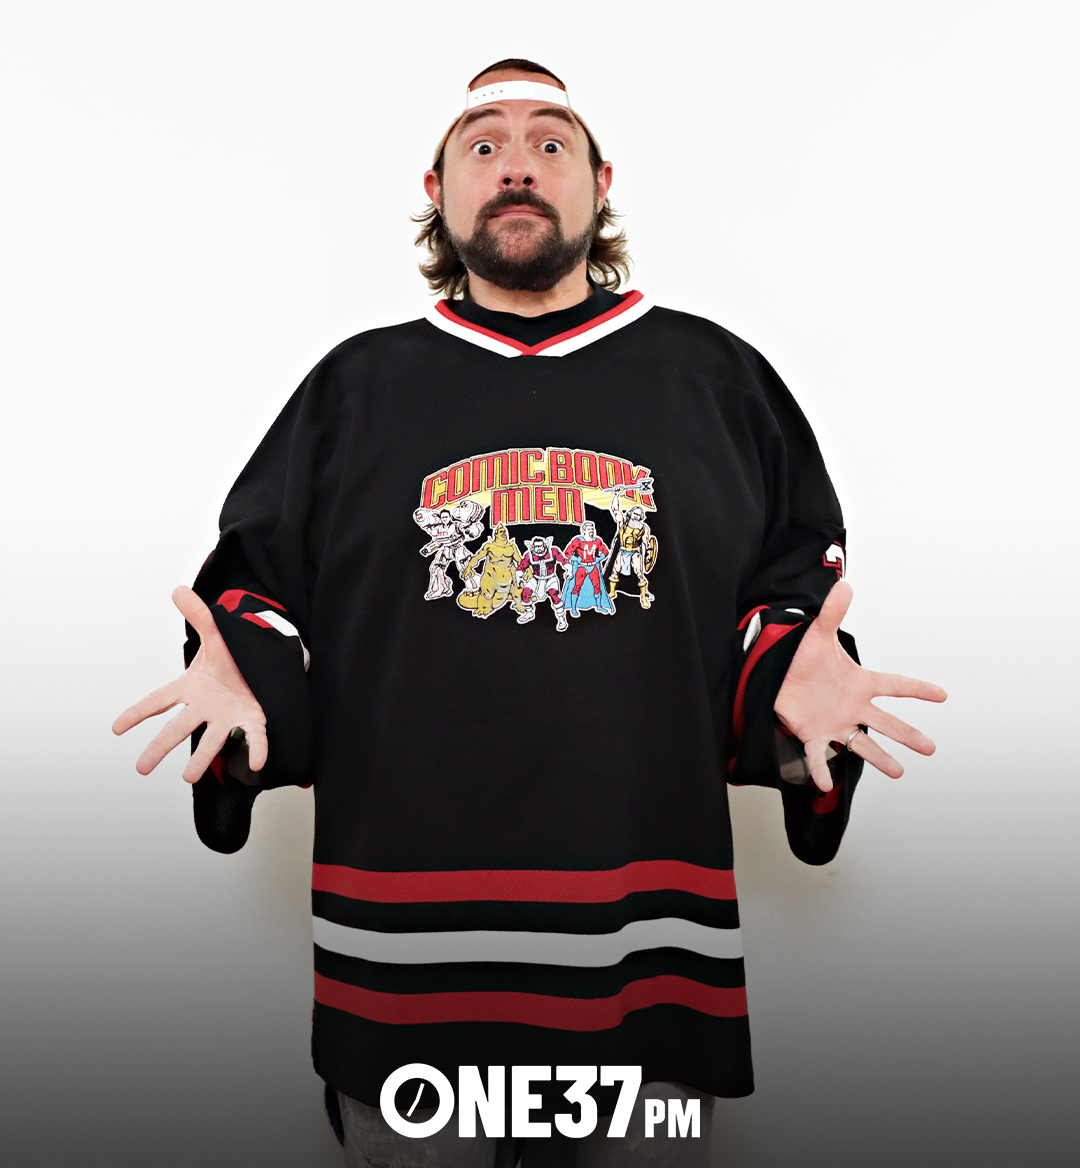 kevin smith nft drop mobile